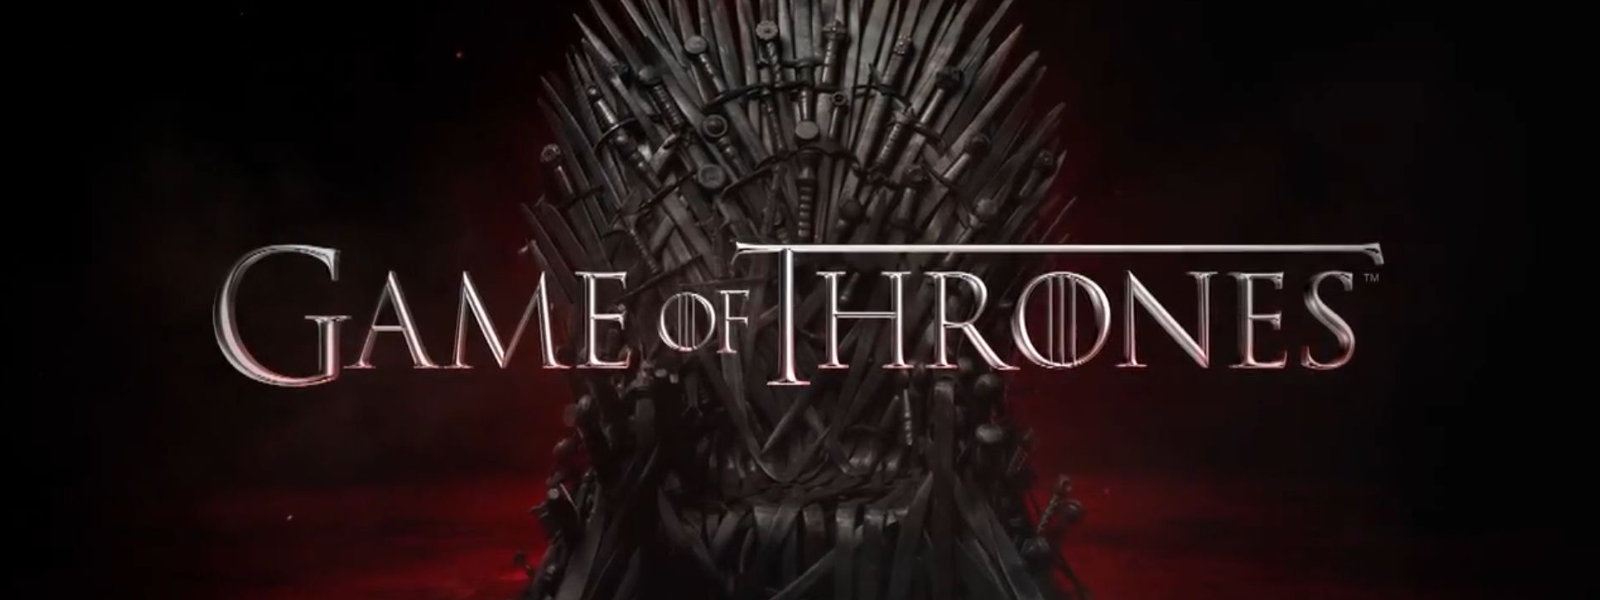 If I Had Written Game Of Thrones & Why We Love Tragedy